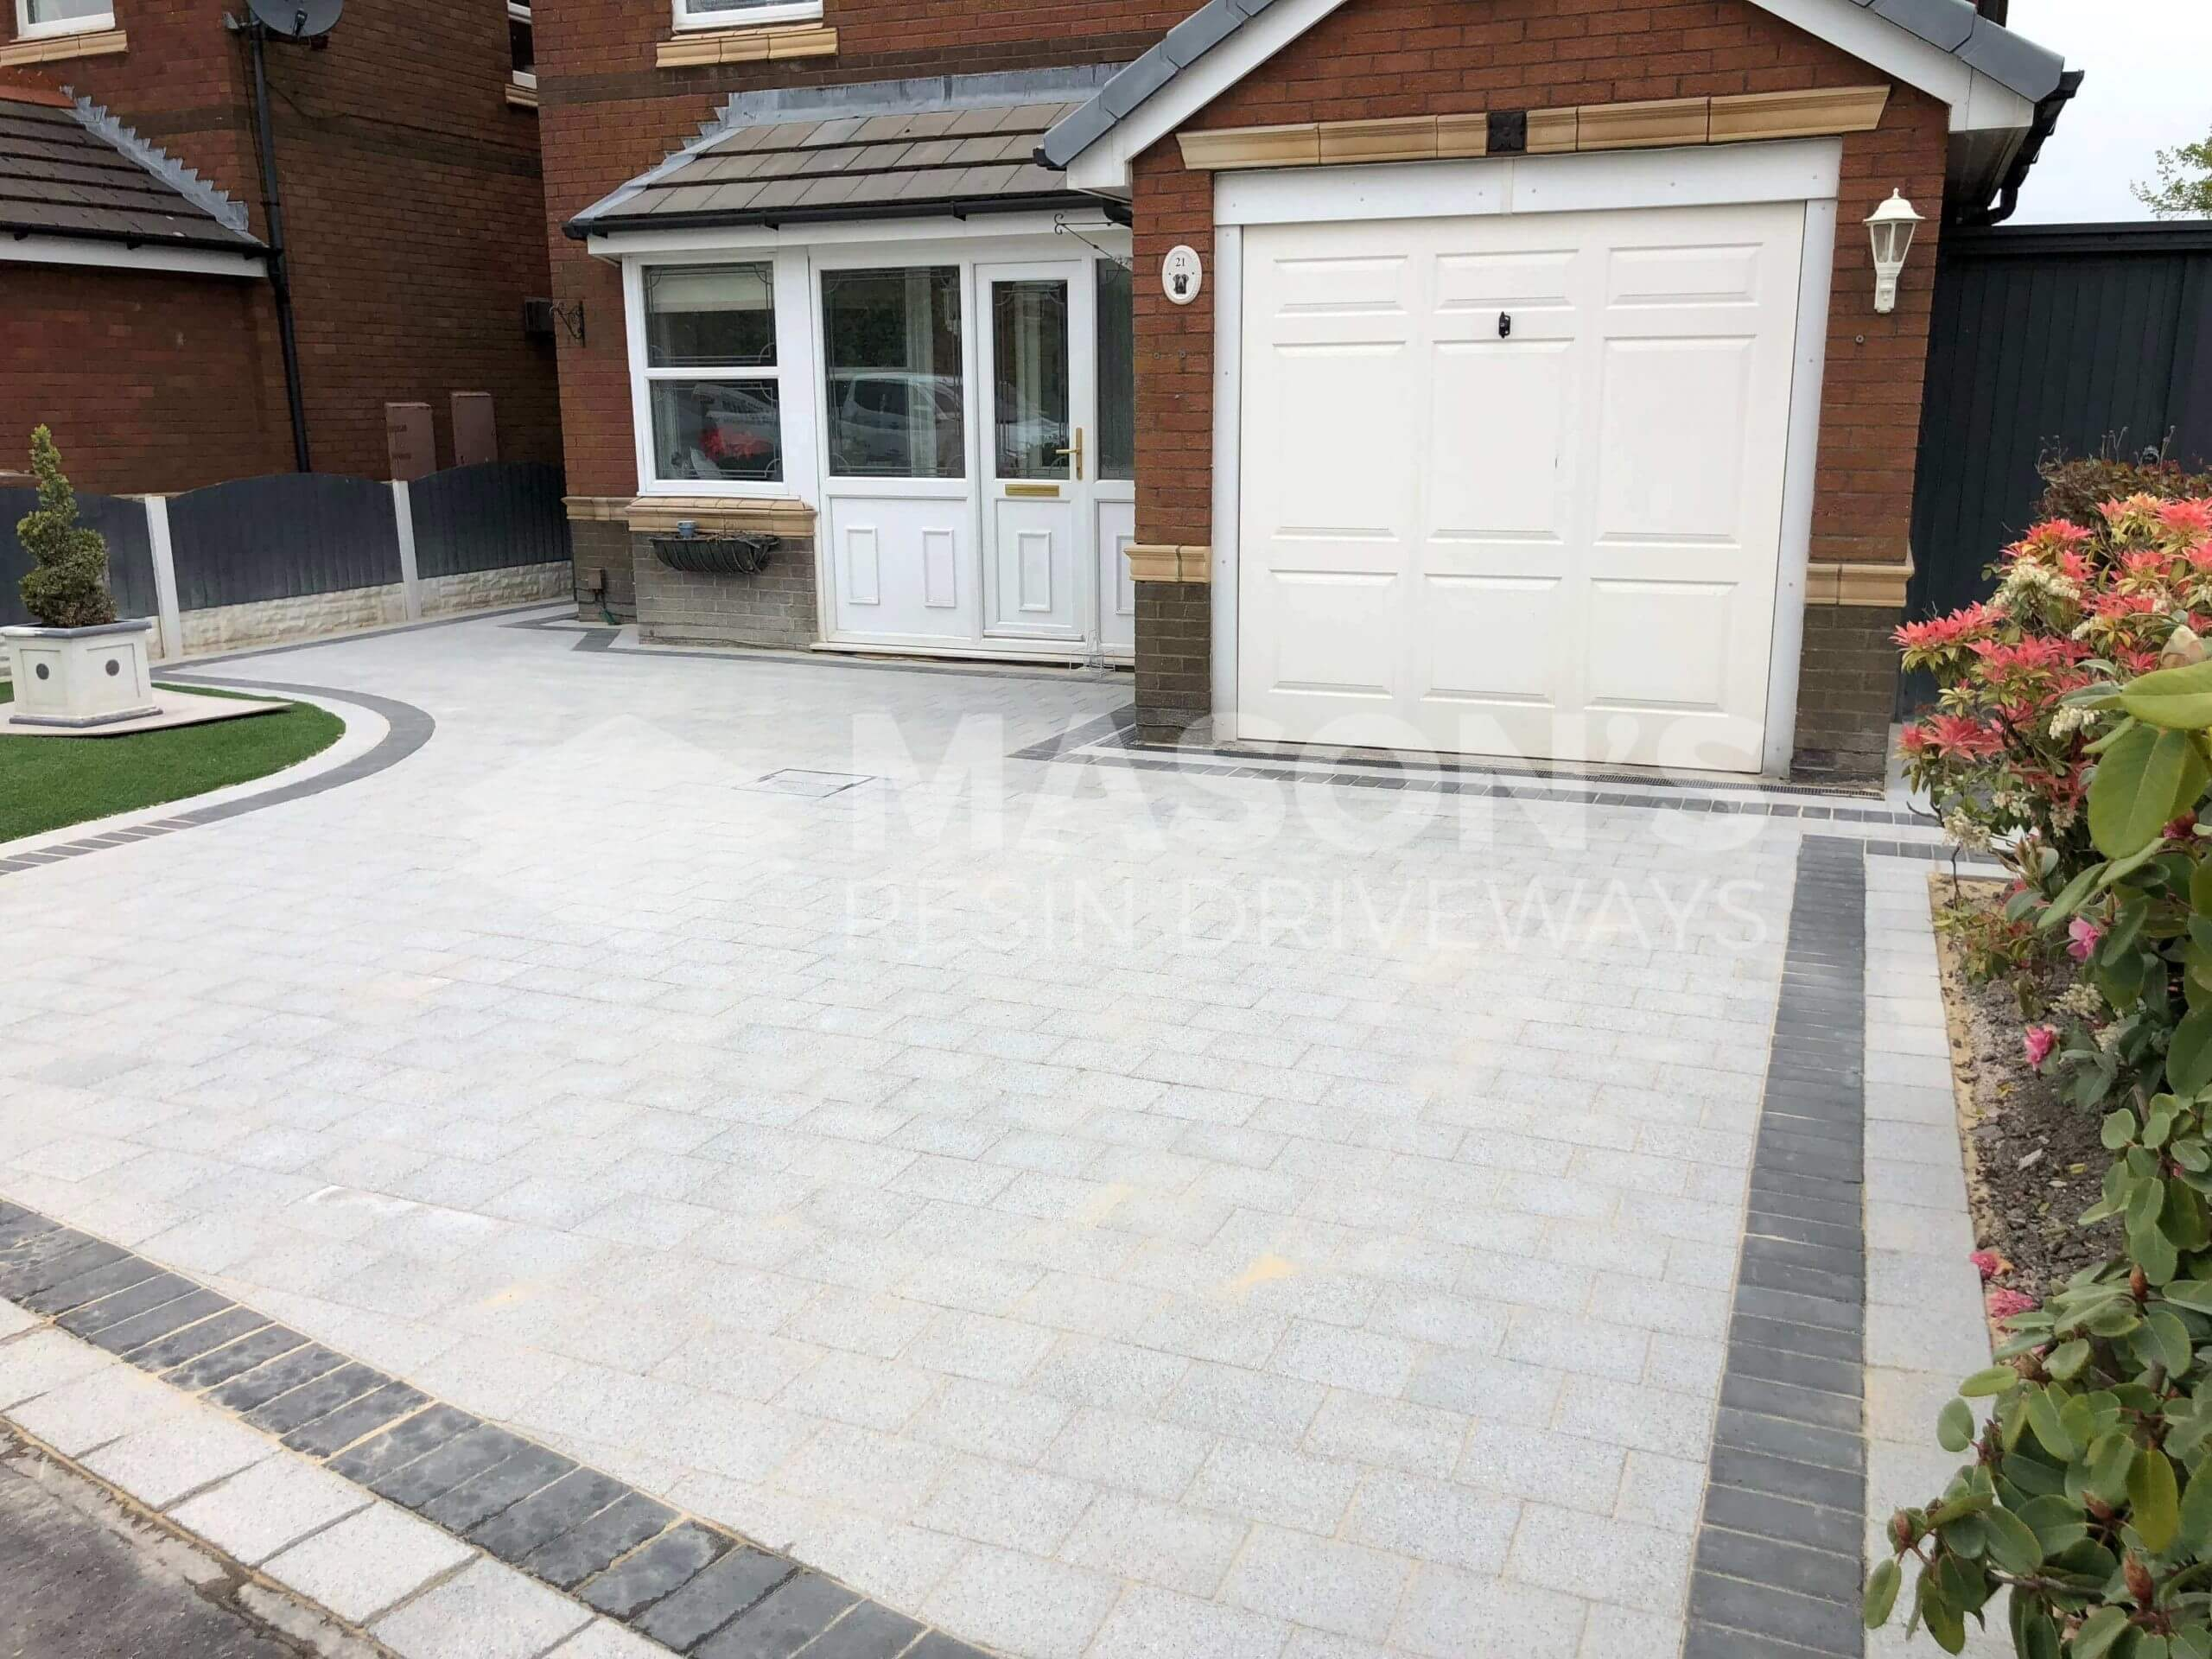 Block Paving Driveway in Preston, Lancashire in the colour Sienna Silver with border